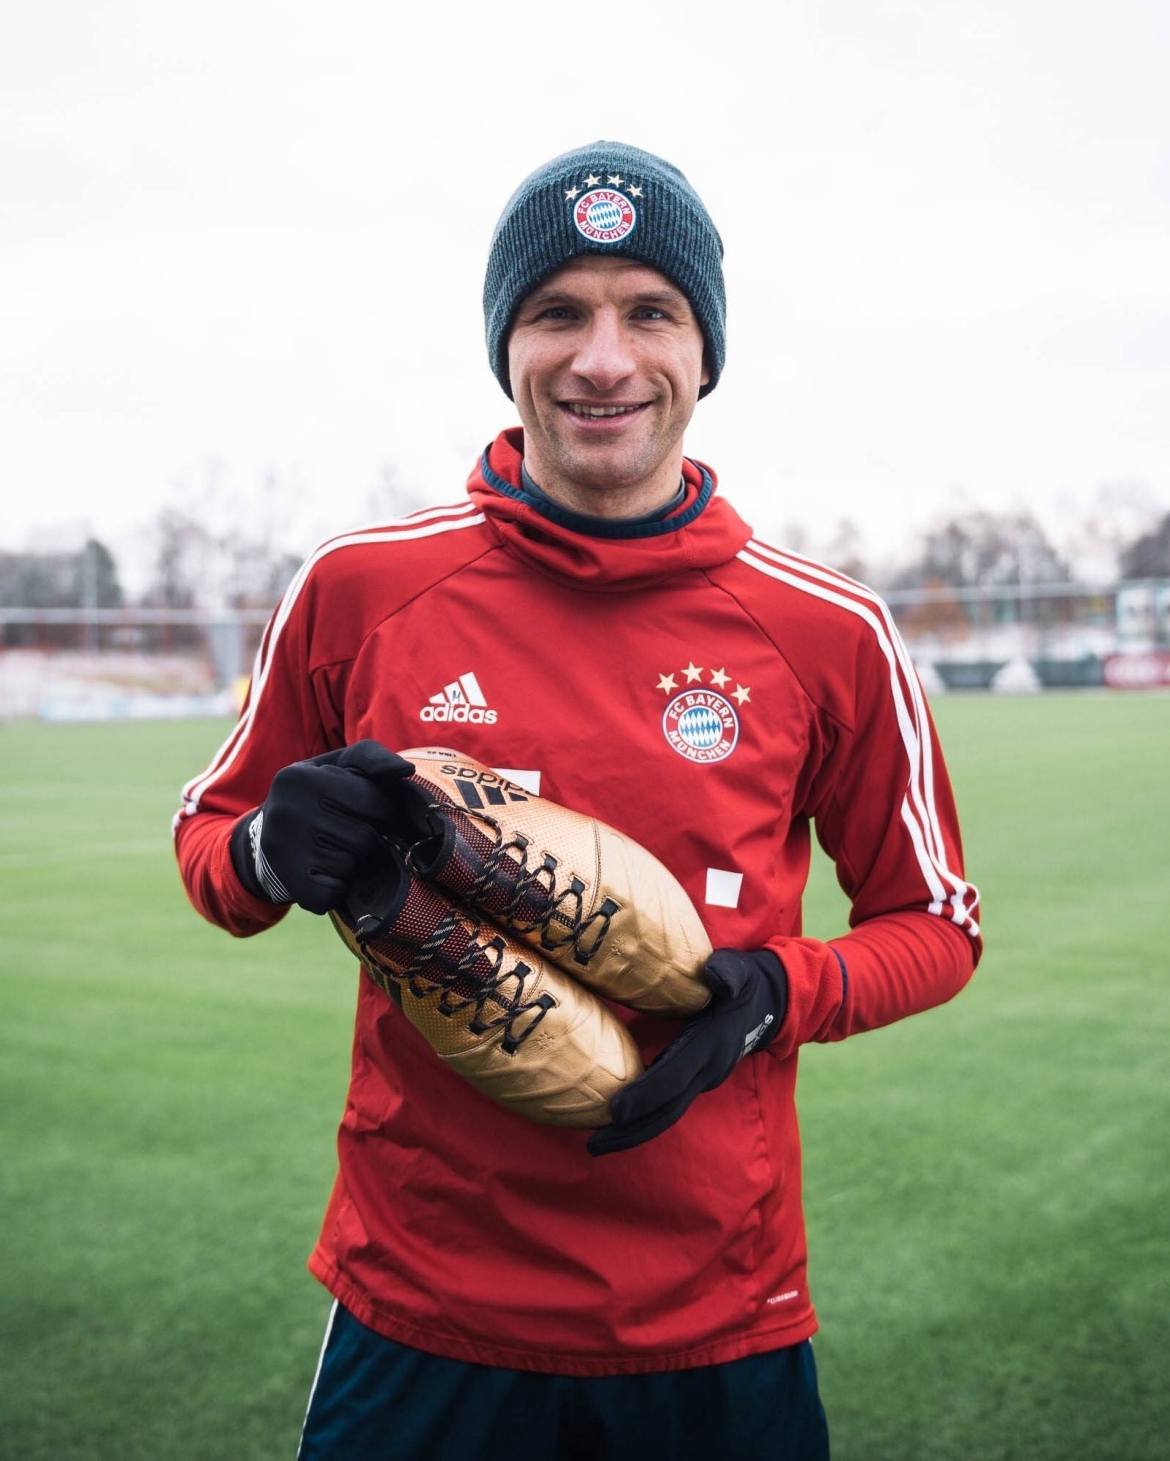 Thomas Muller Brand Endorsements Sponsors Ambassador Partners Advertisements TVC Promotion Adidas